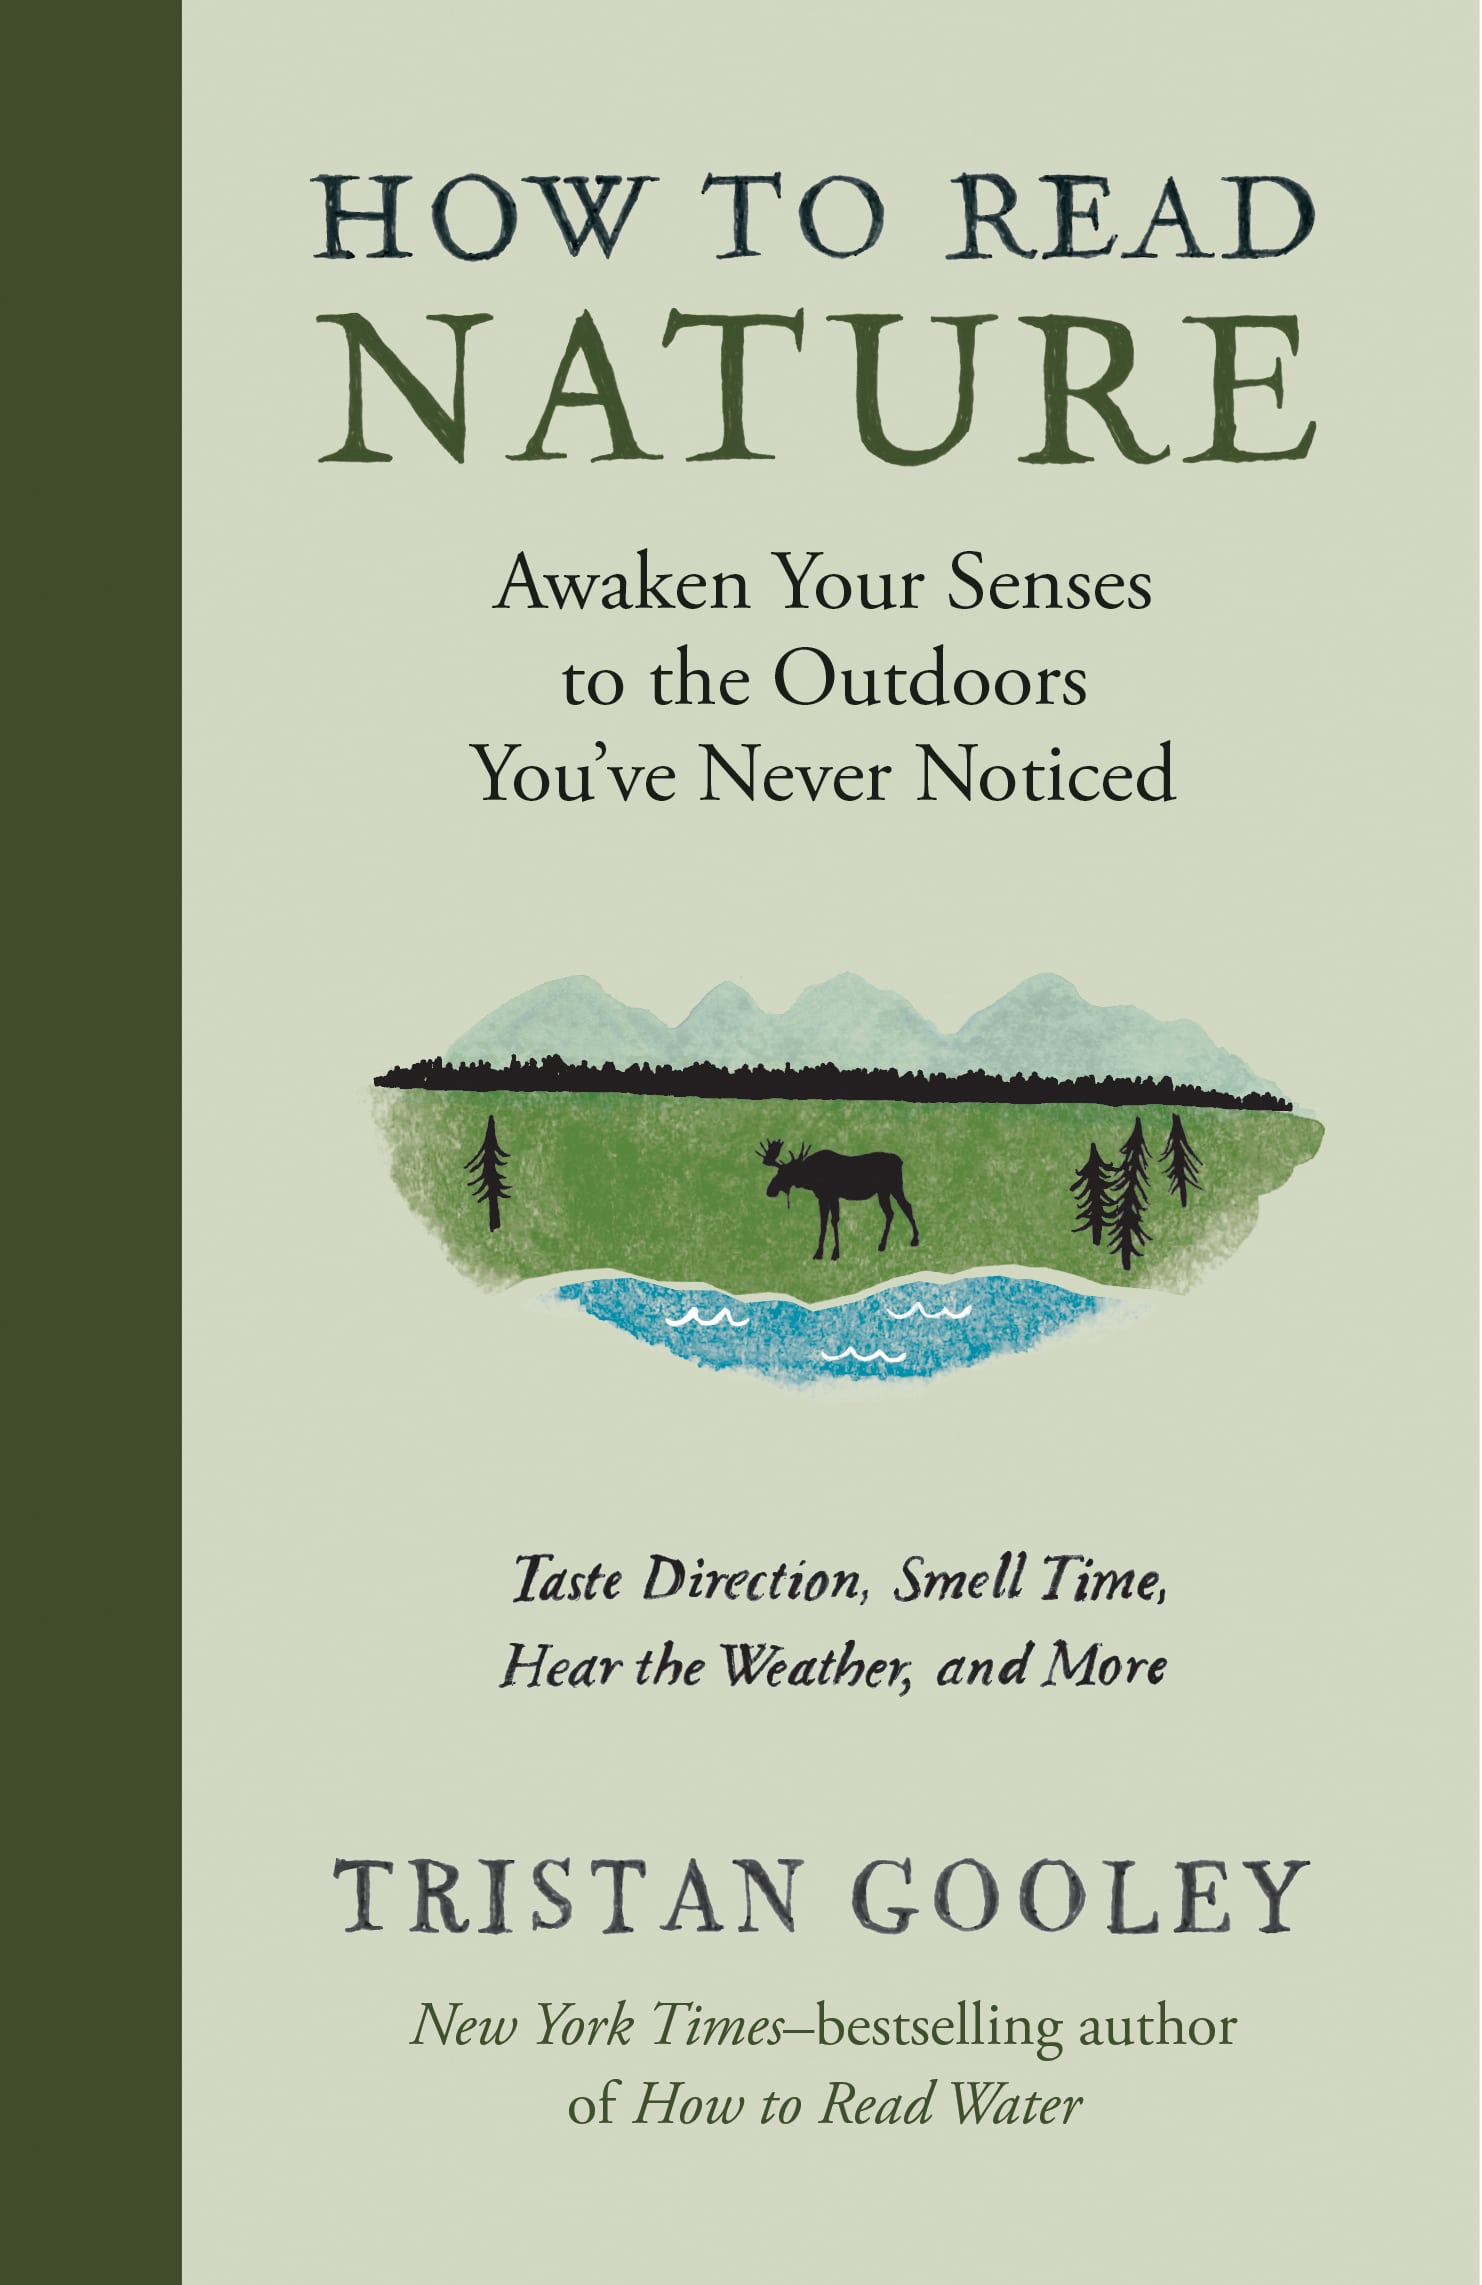 How to read nature, written by tristan gooley.